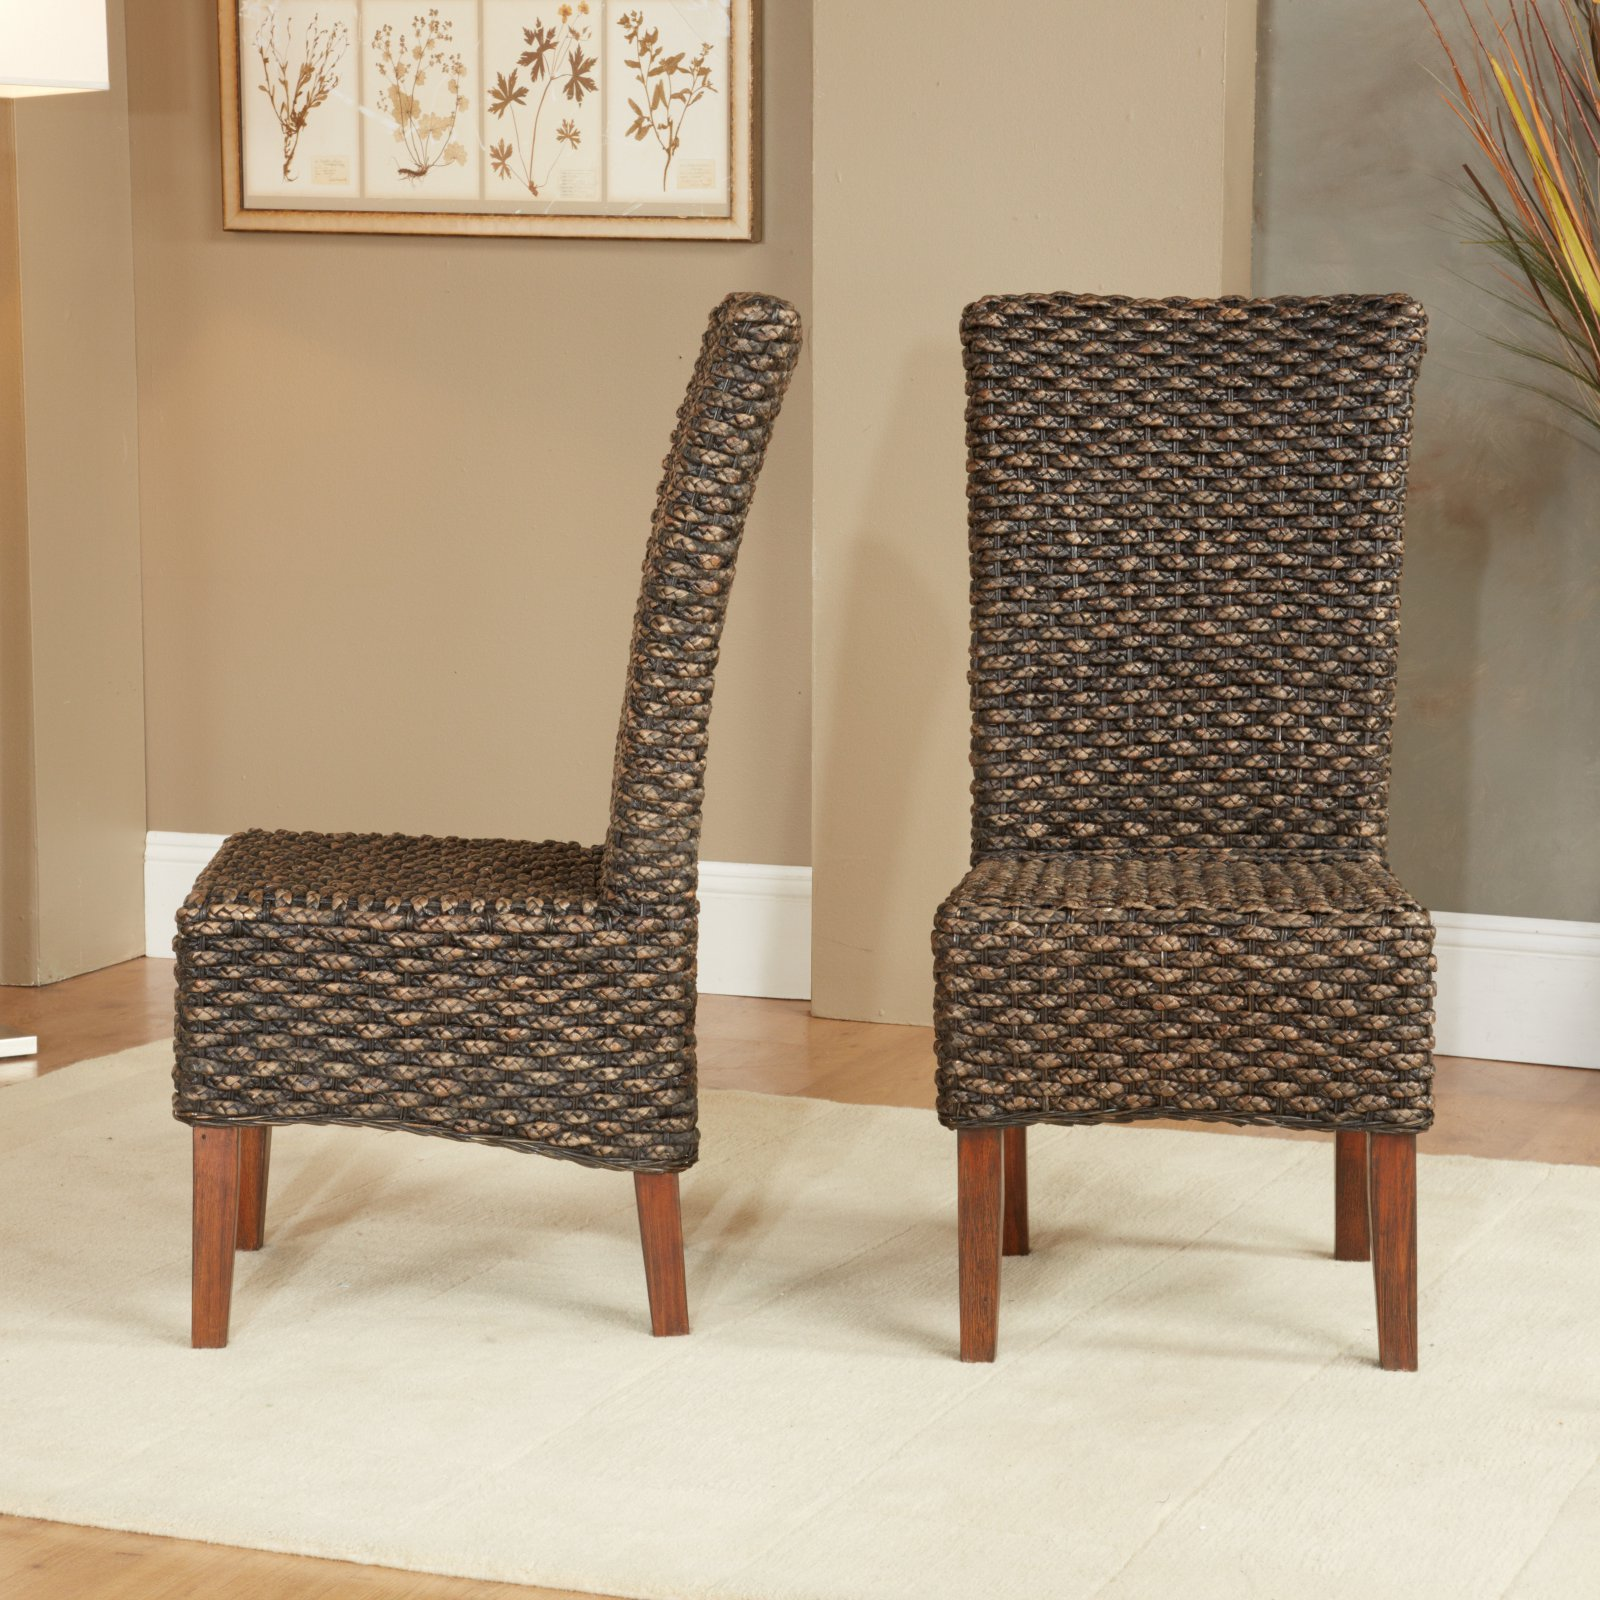 Modus Meadow Wicker Dining Side Chair - Brick Brown - Set of 2